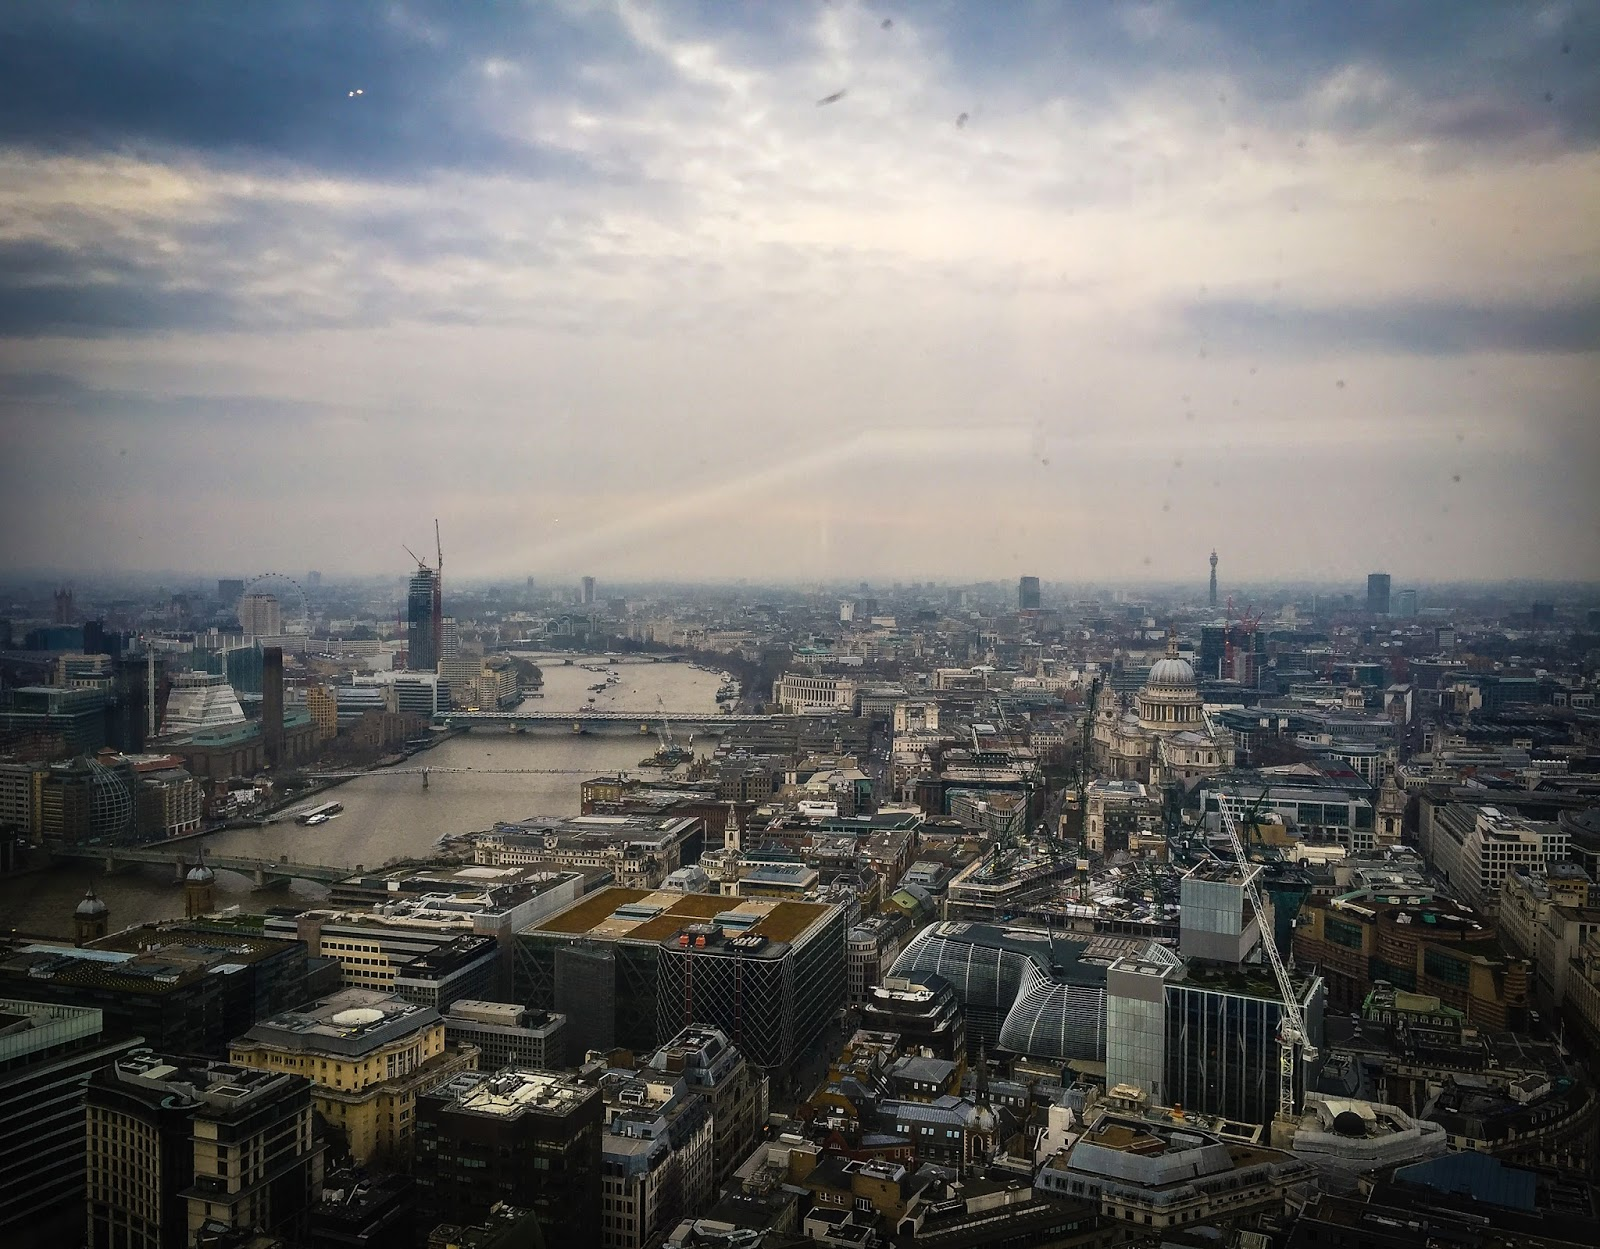 Exchange in london tips plus picture from the sky garden